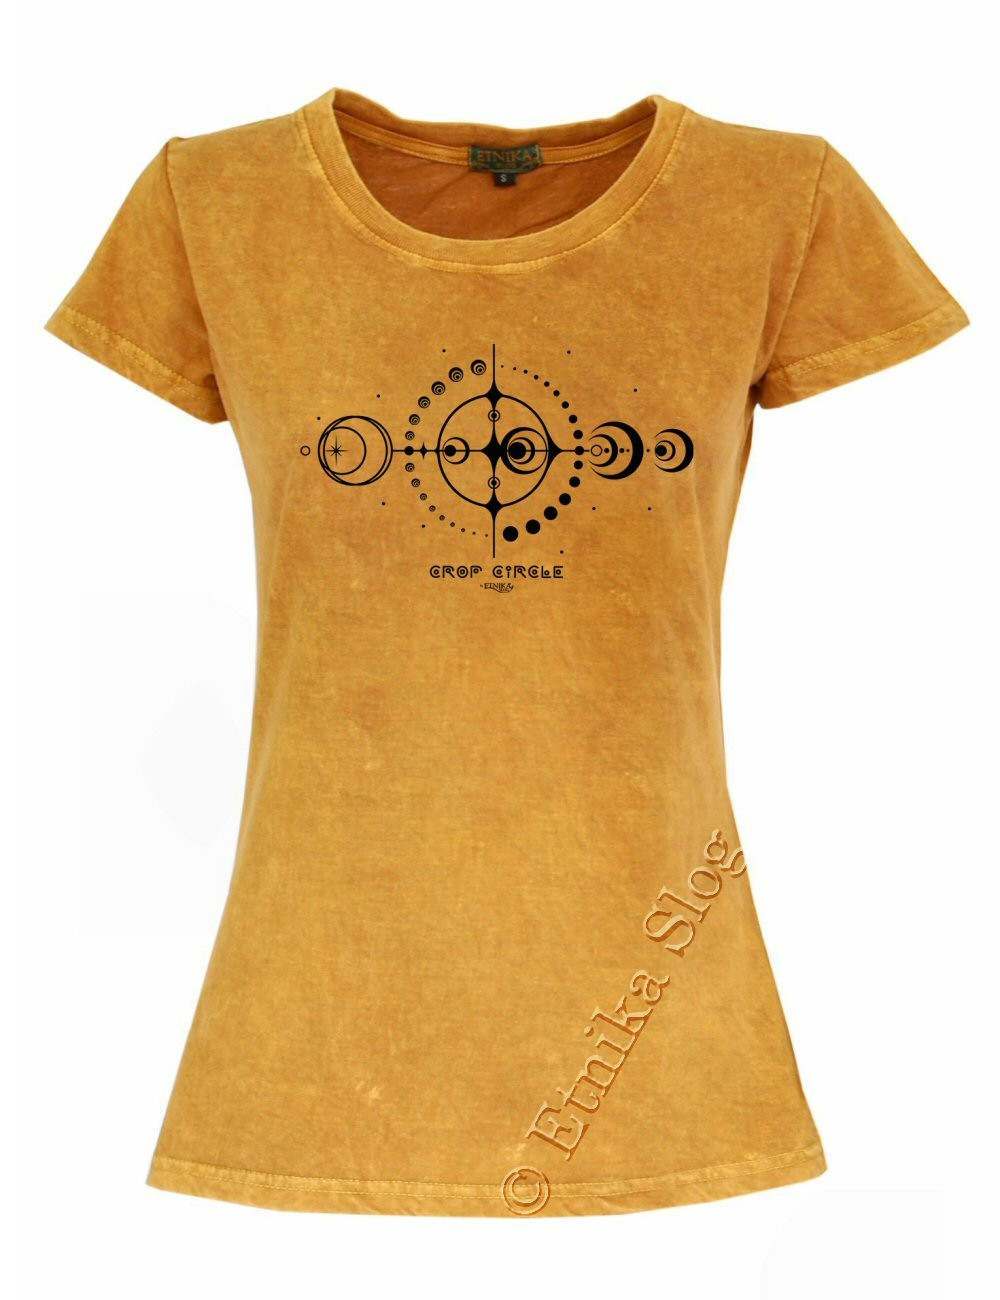 PRINTED T-SHIRTS AB-NPM03-42A - Oriente Import S.r.l.